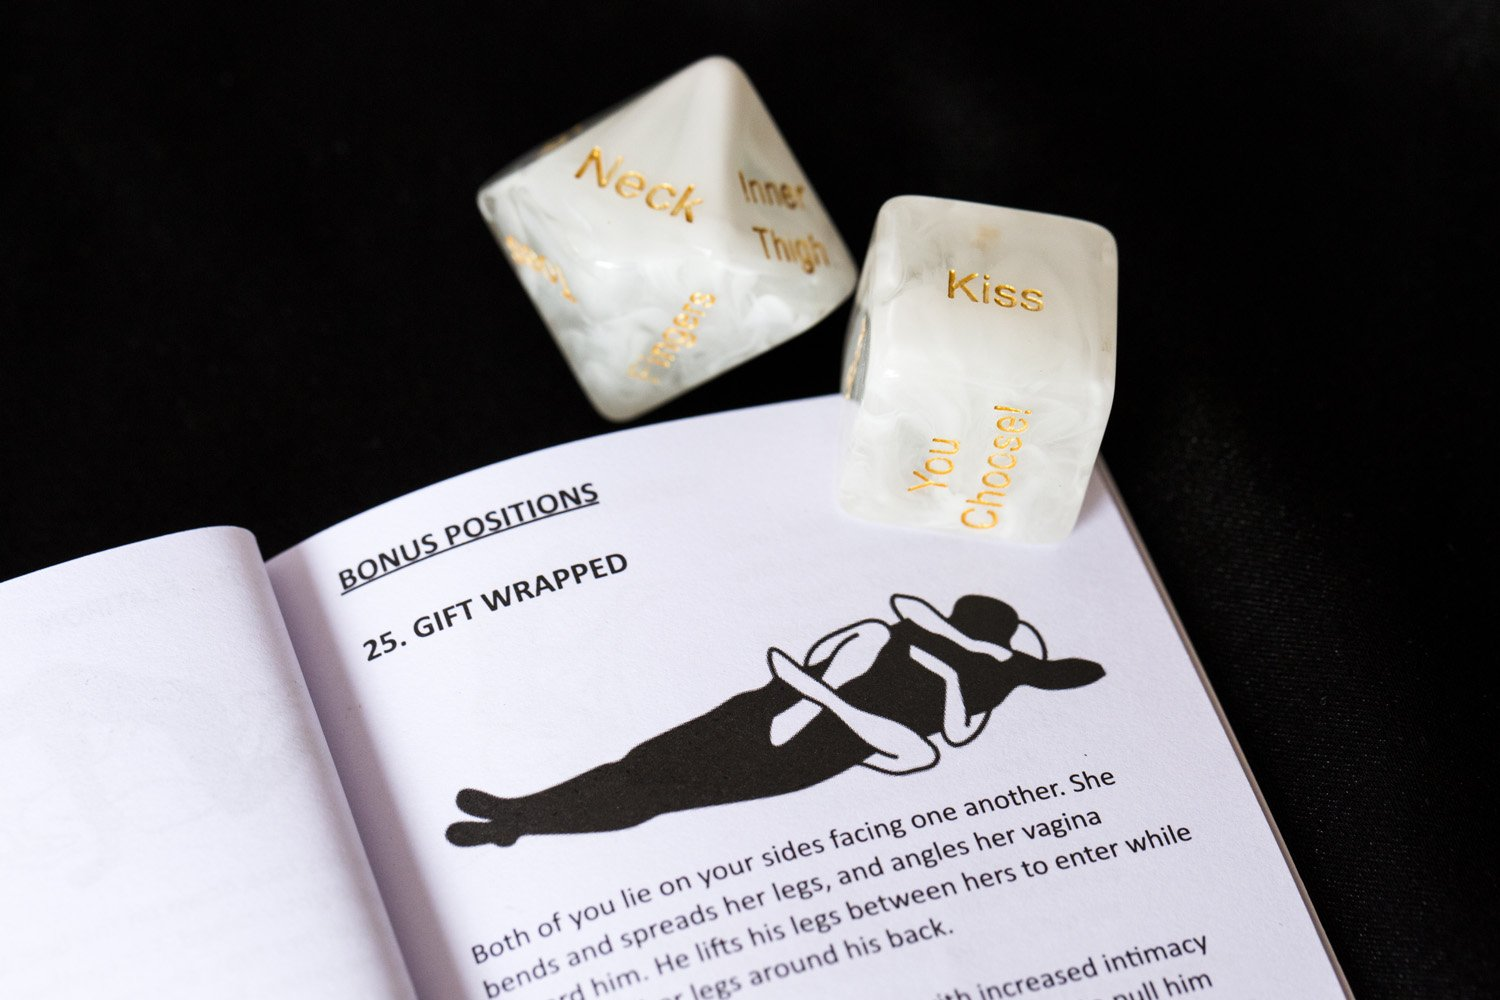 Sex Dice Sex Game for Adult Couples Prime with 34-Position Booklet | Sex Toys & Games for Adults, Beautifully Gift Packaged to Make The Perfect Couples Gift (White) by Dalliance Adult